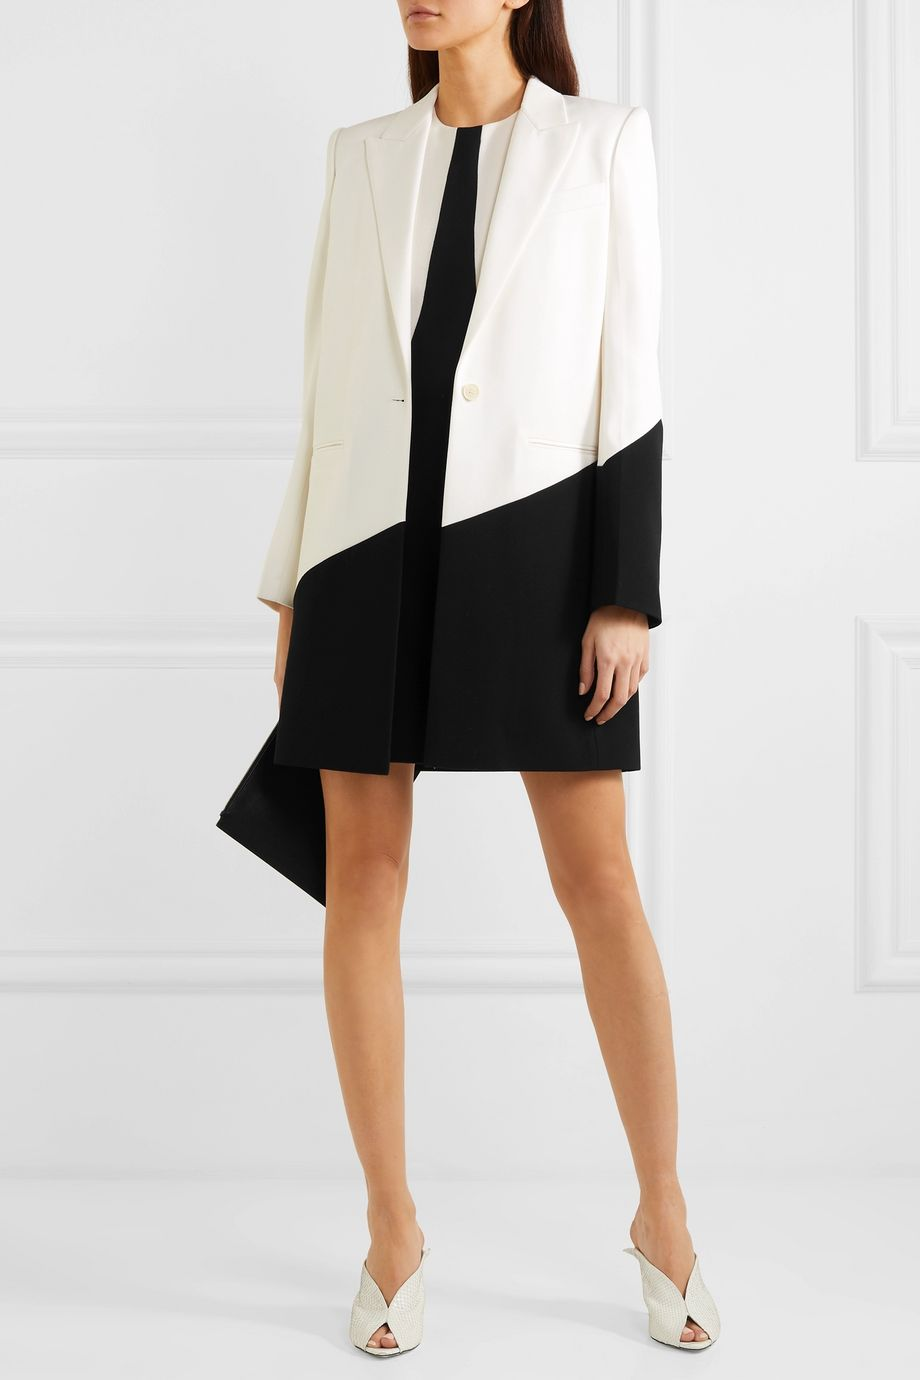 Givenchy Two-tone wool blazer